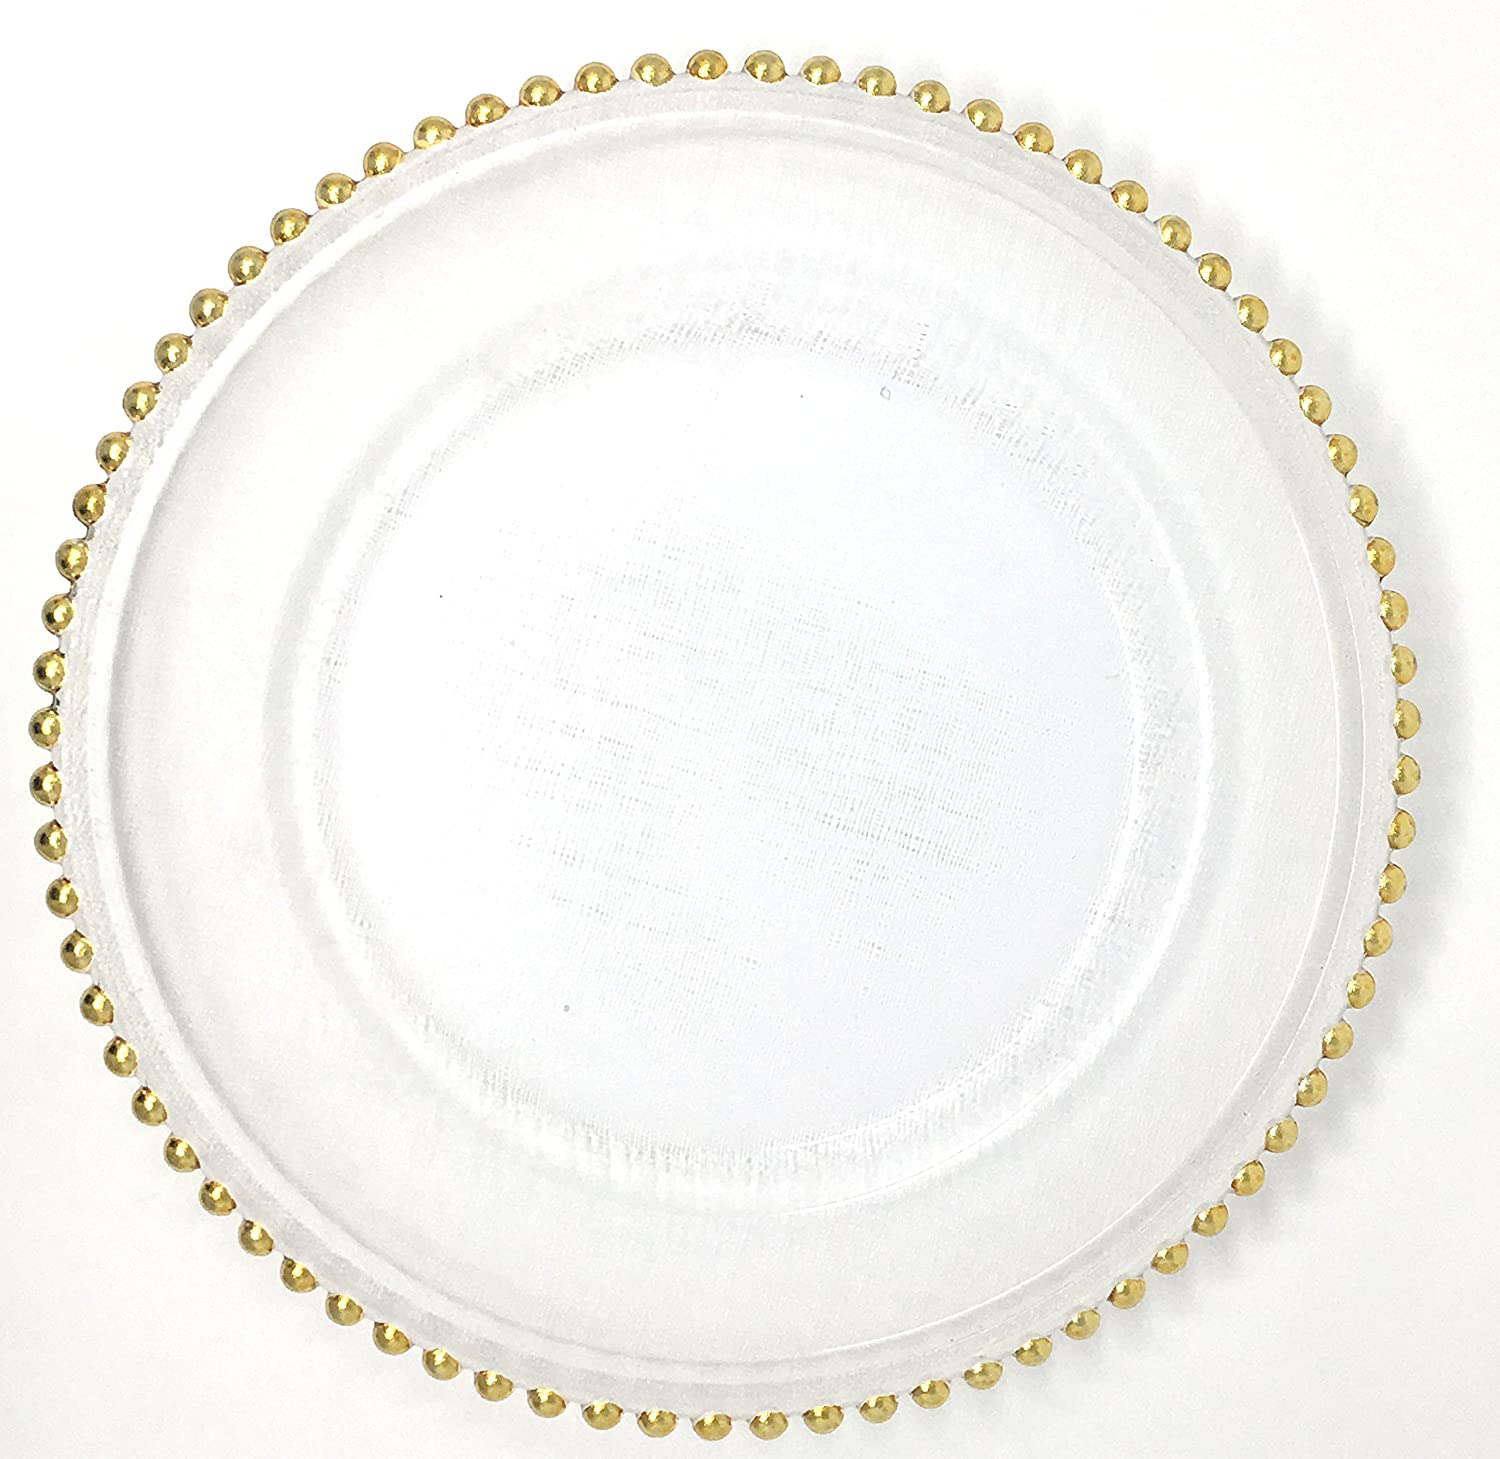 Spectacular Glass Dinnerware Formal 13-Inch Gold Beaded Rim Clear Glass Charger Plate Wedding Party Dinner Modern Appeal Glass Plates (4) Unique Imports